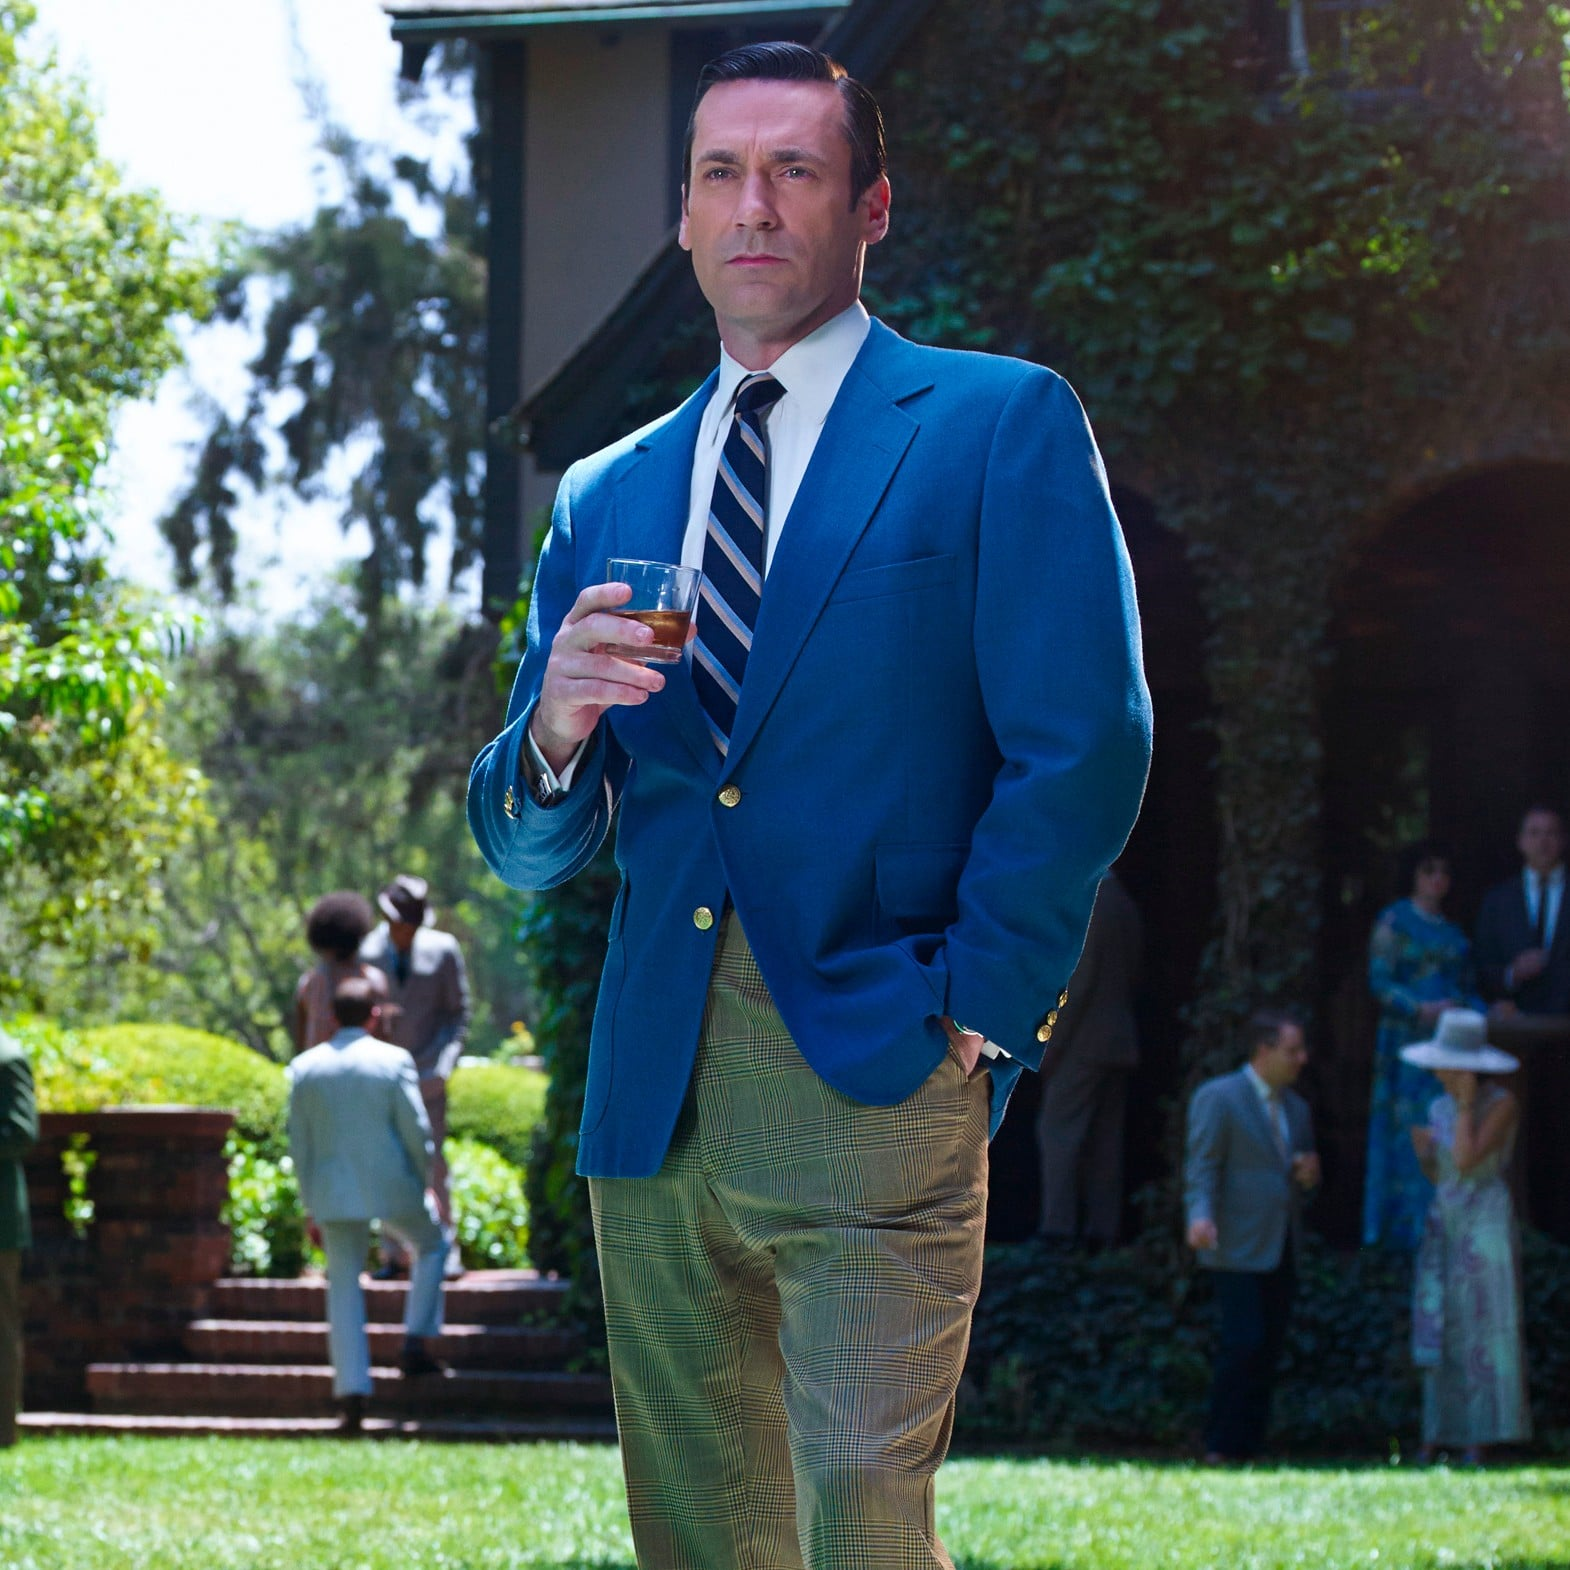 the great moment of mad men party decorations. Mad Men The Great Moment Of Party Decorations